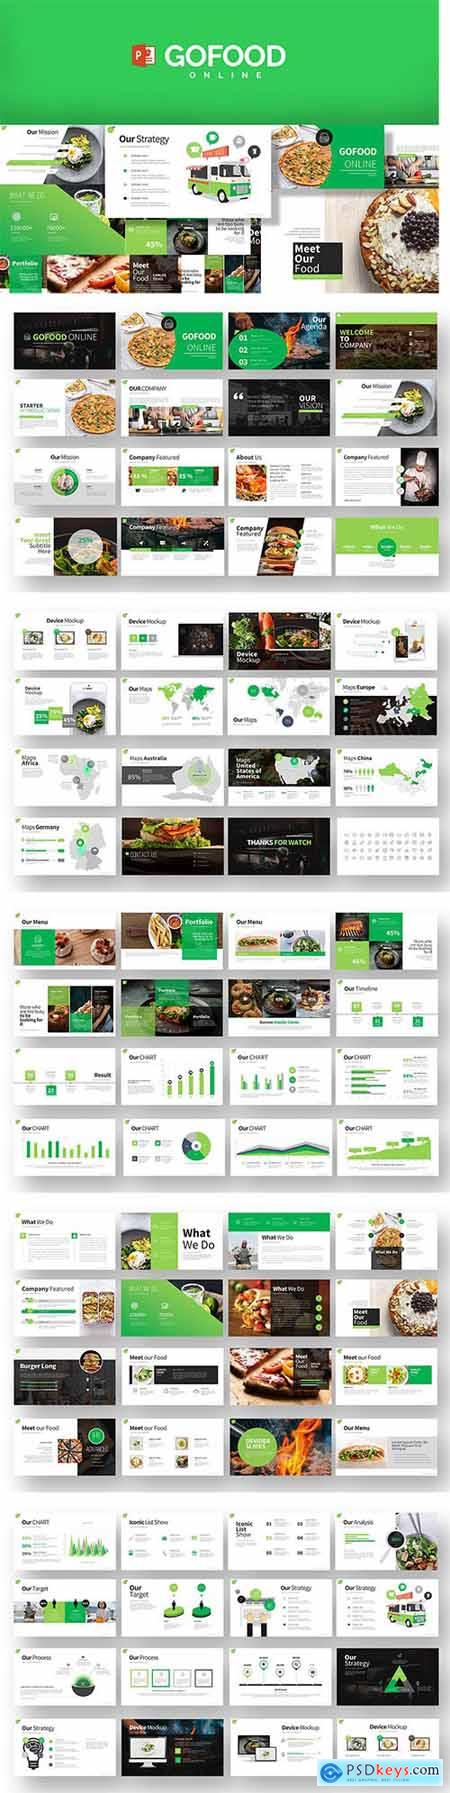 Gofood Powerpoint and Keynote Templates